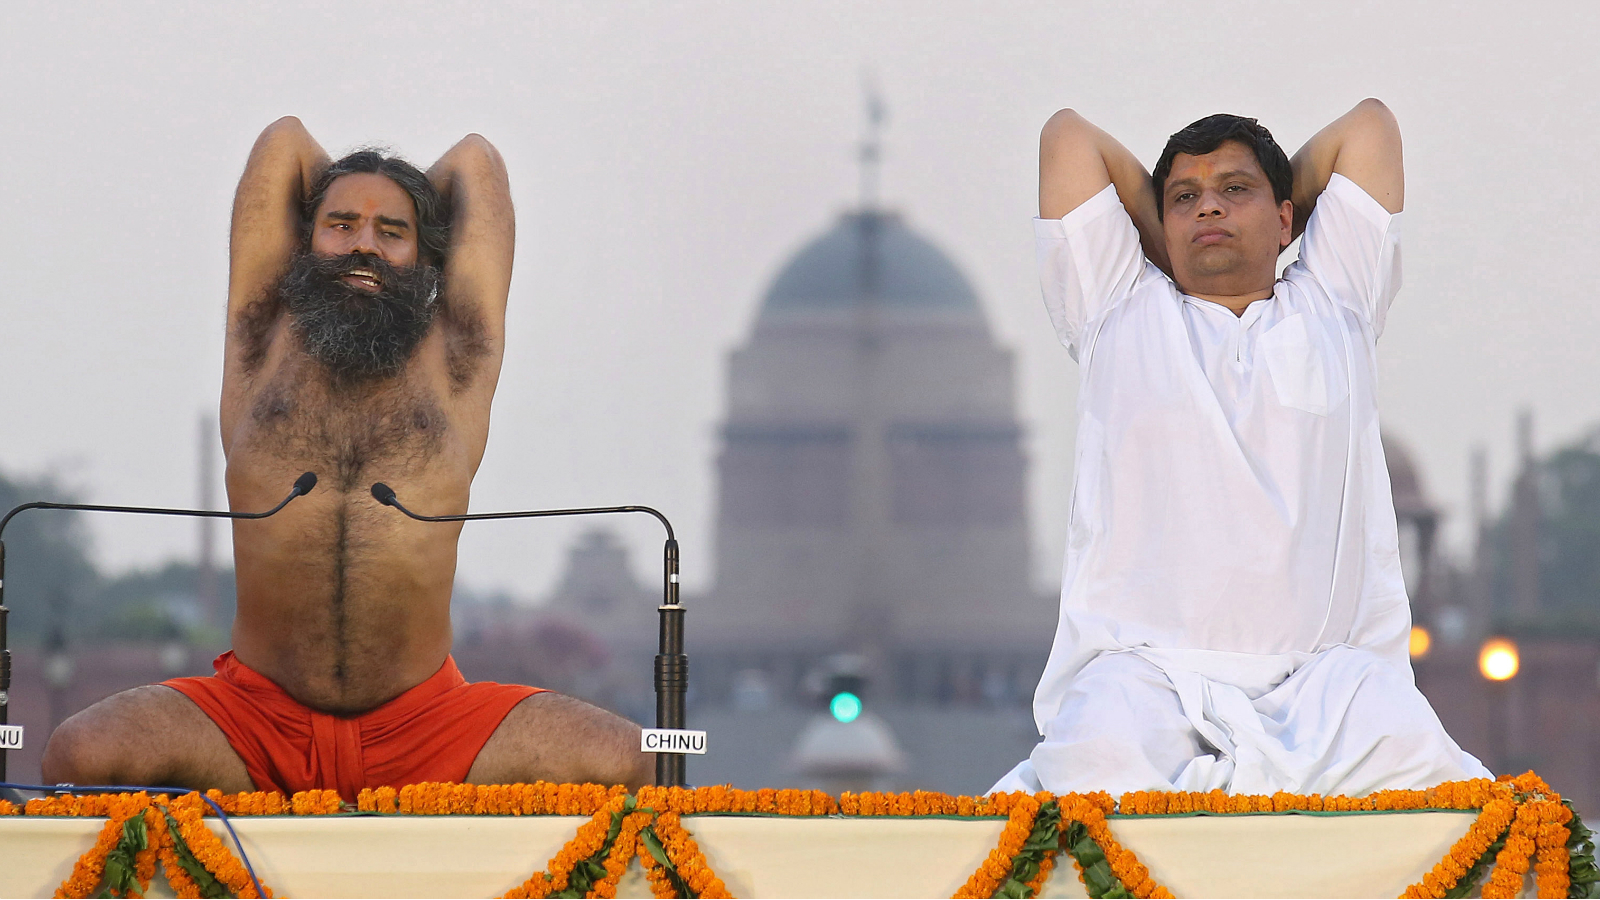 Indian Yoga Guru Baba Ramdev (L) leads yoga exercises with his associate Balkrishna (R) during the rehearsals of the second International Day of Yoga, at Rajpath in New Delhi, India, 19 June 2016. International Yoga Day will be observed on 21 June 2016.